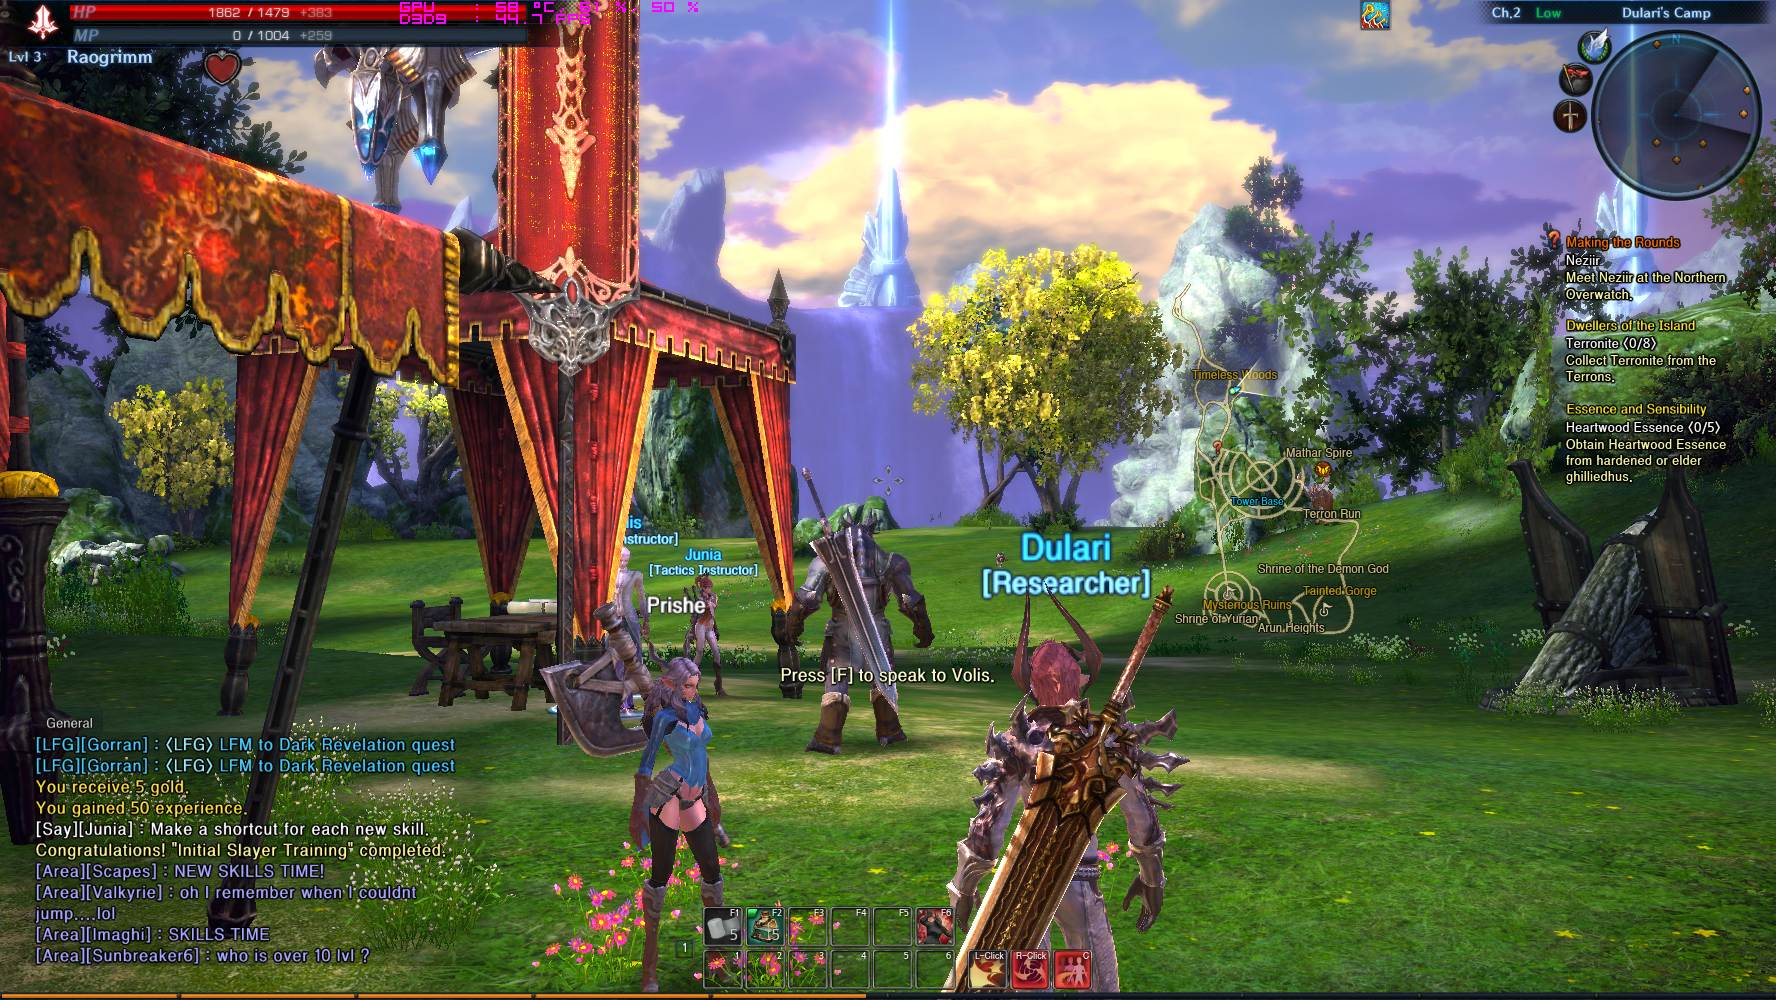 purrrfect games boo-yah deleted link tera